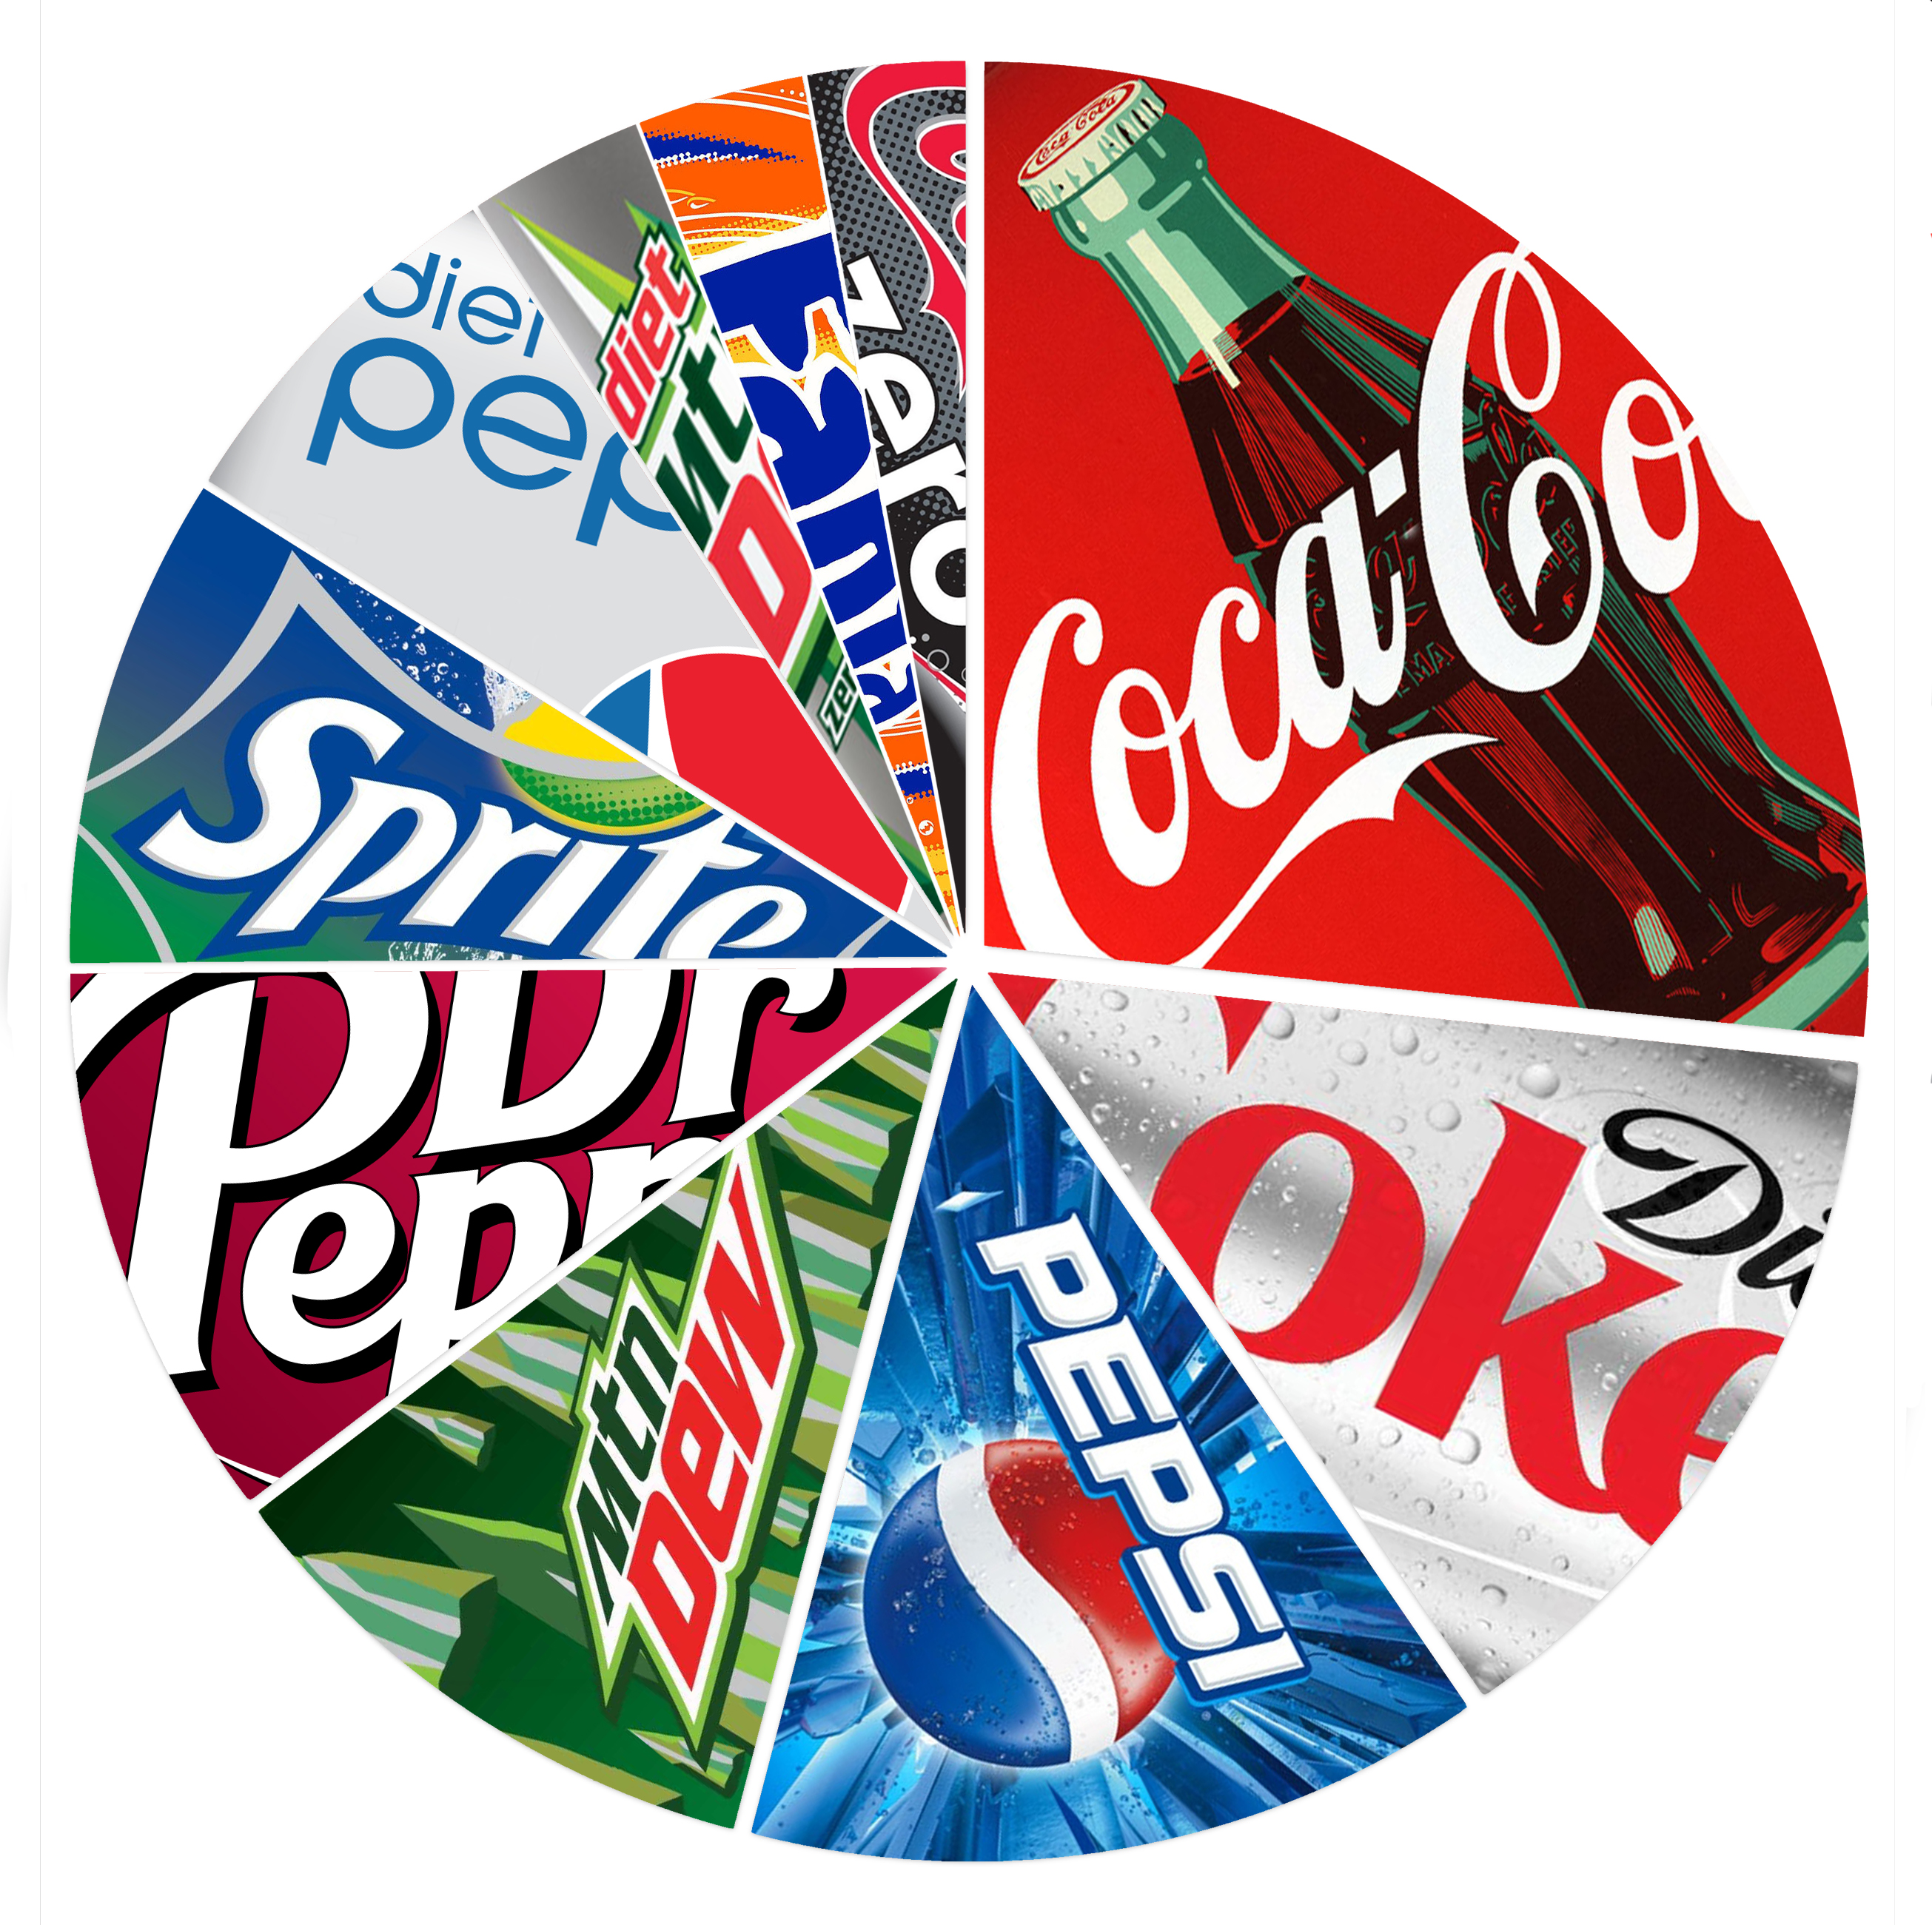 India's Soft Drink Industry